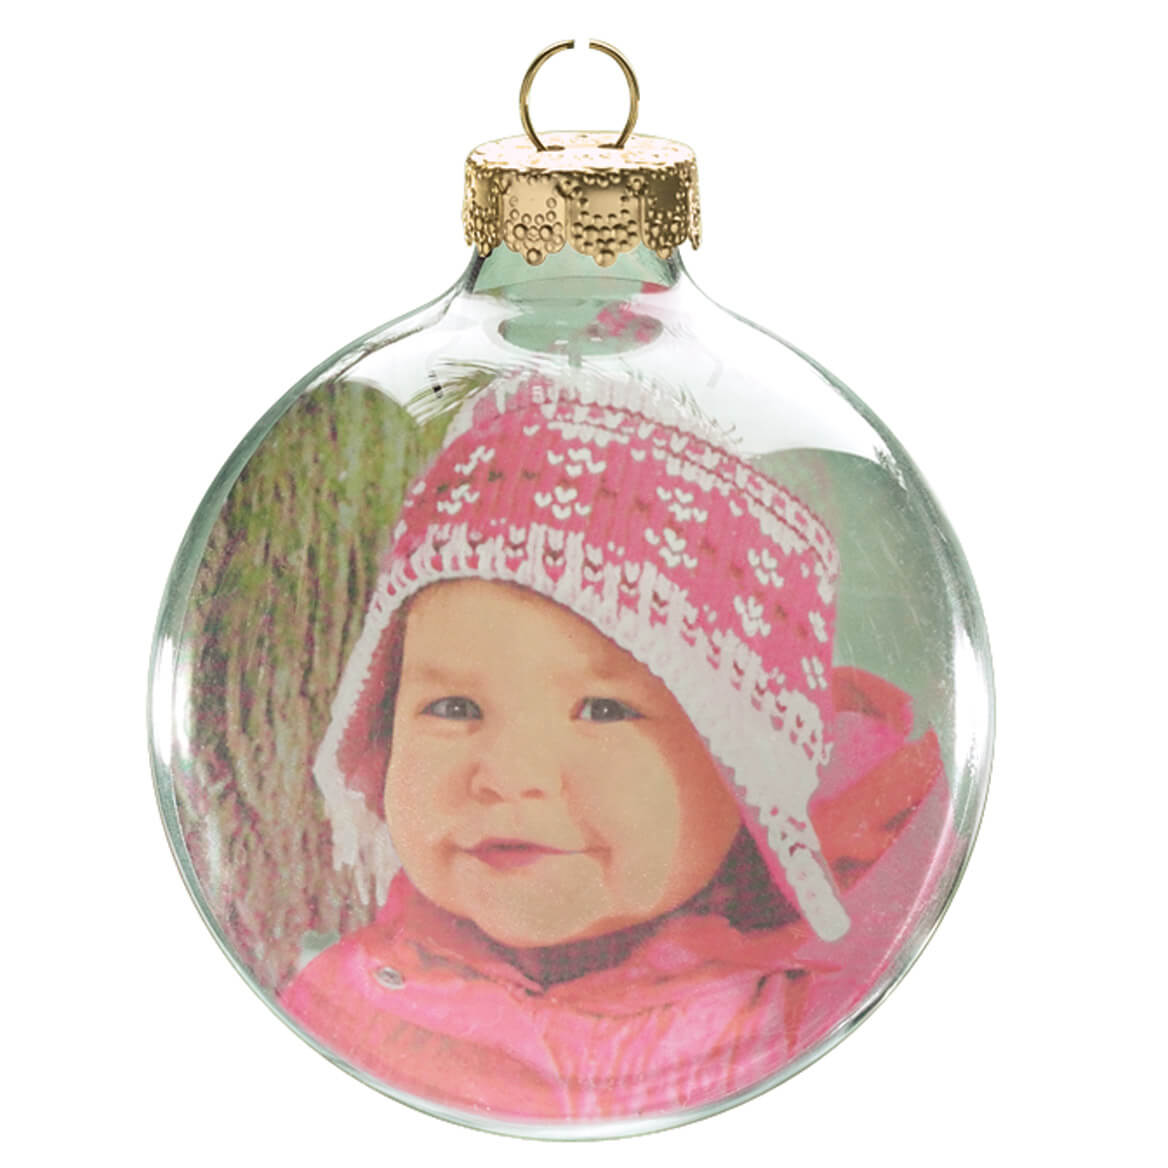 Christmas Ornaments Online Shopping Europe: Christmas Ornaments